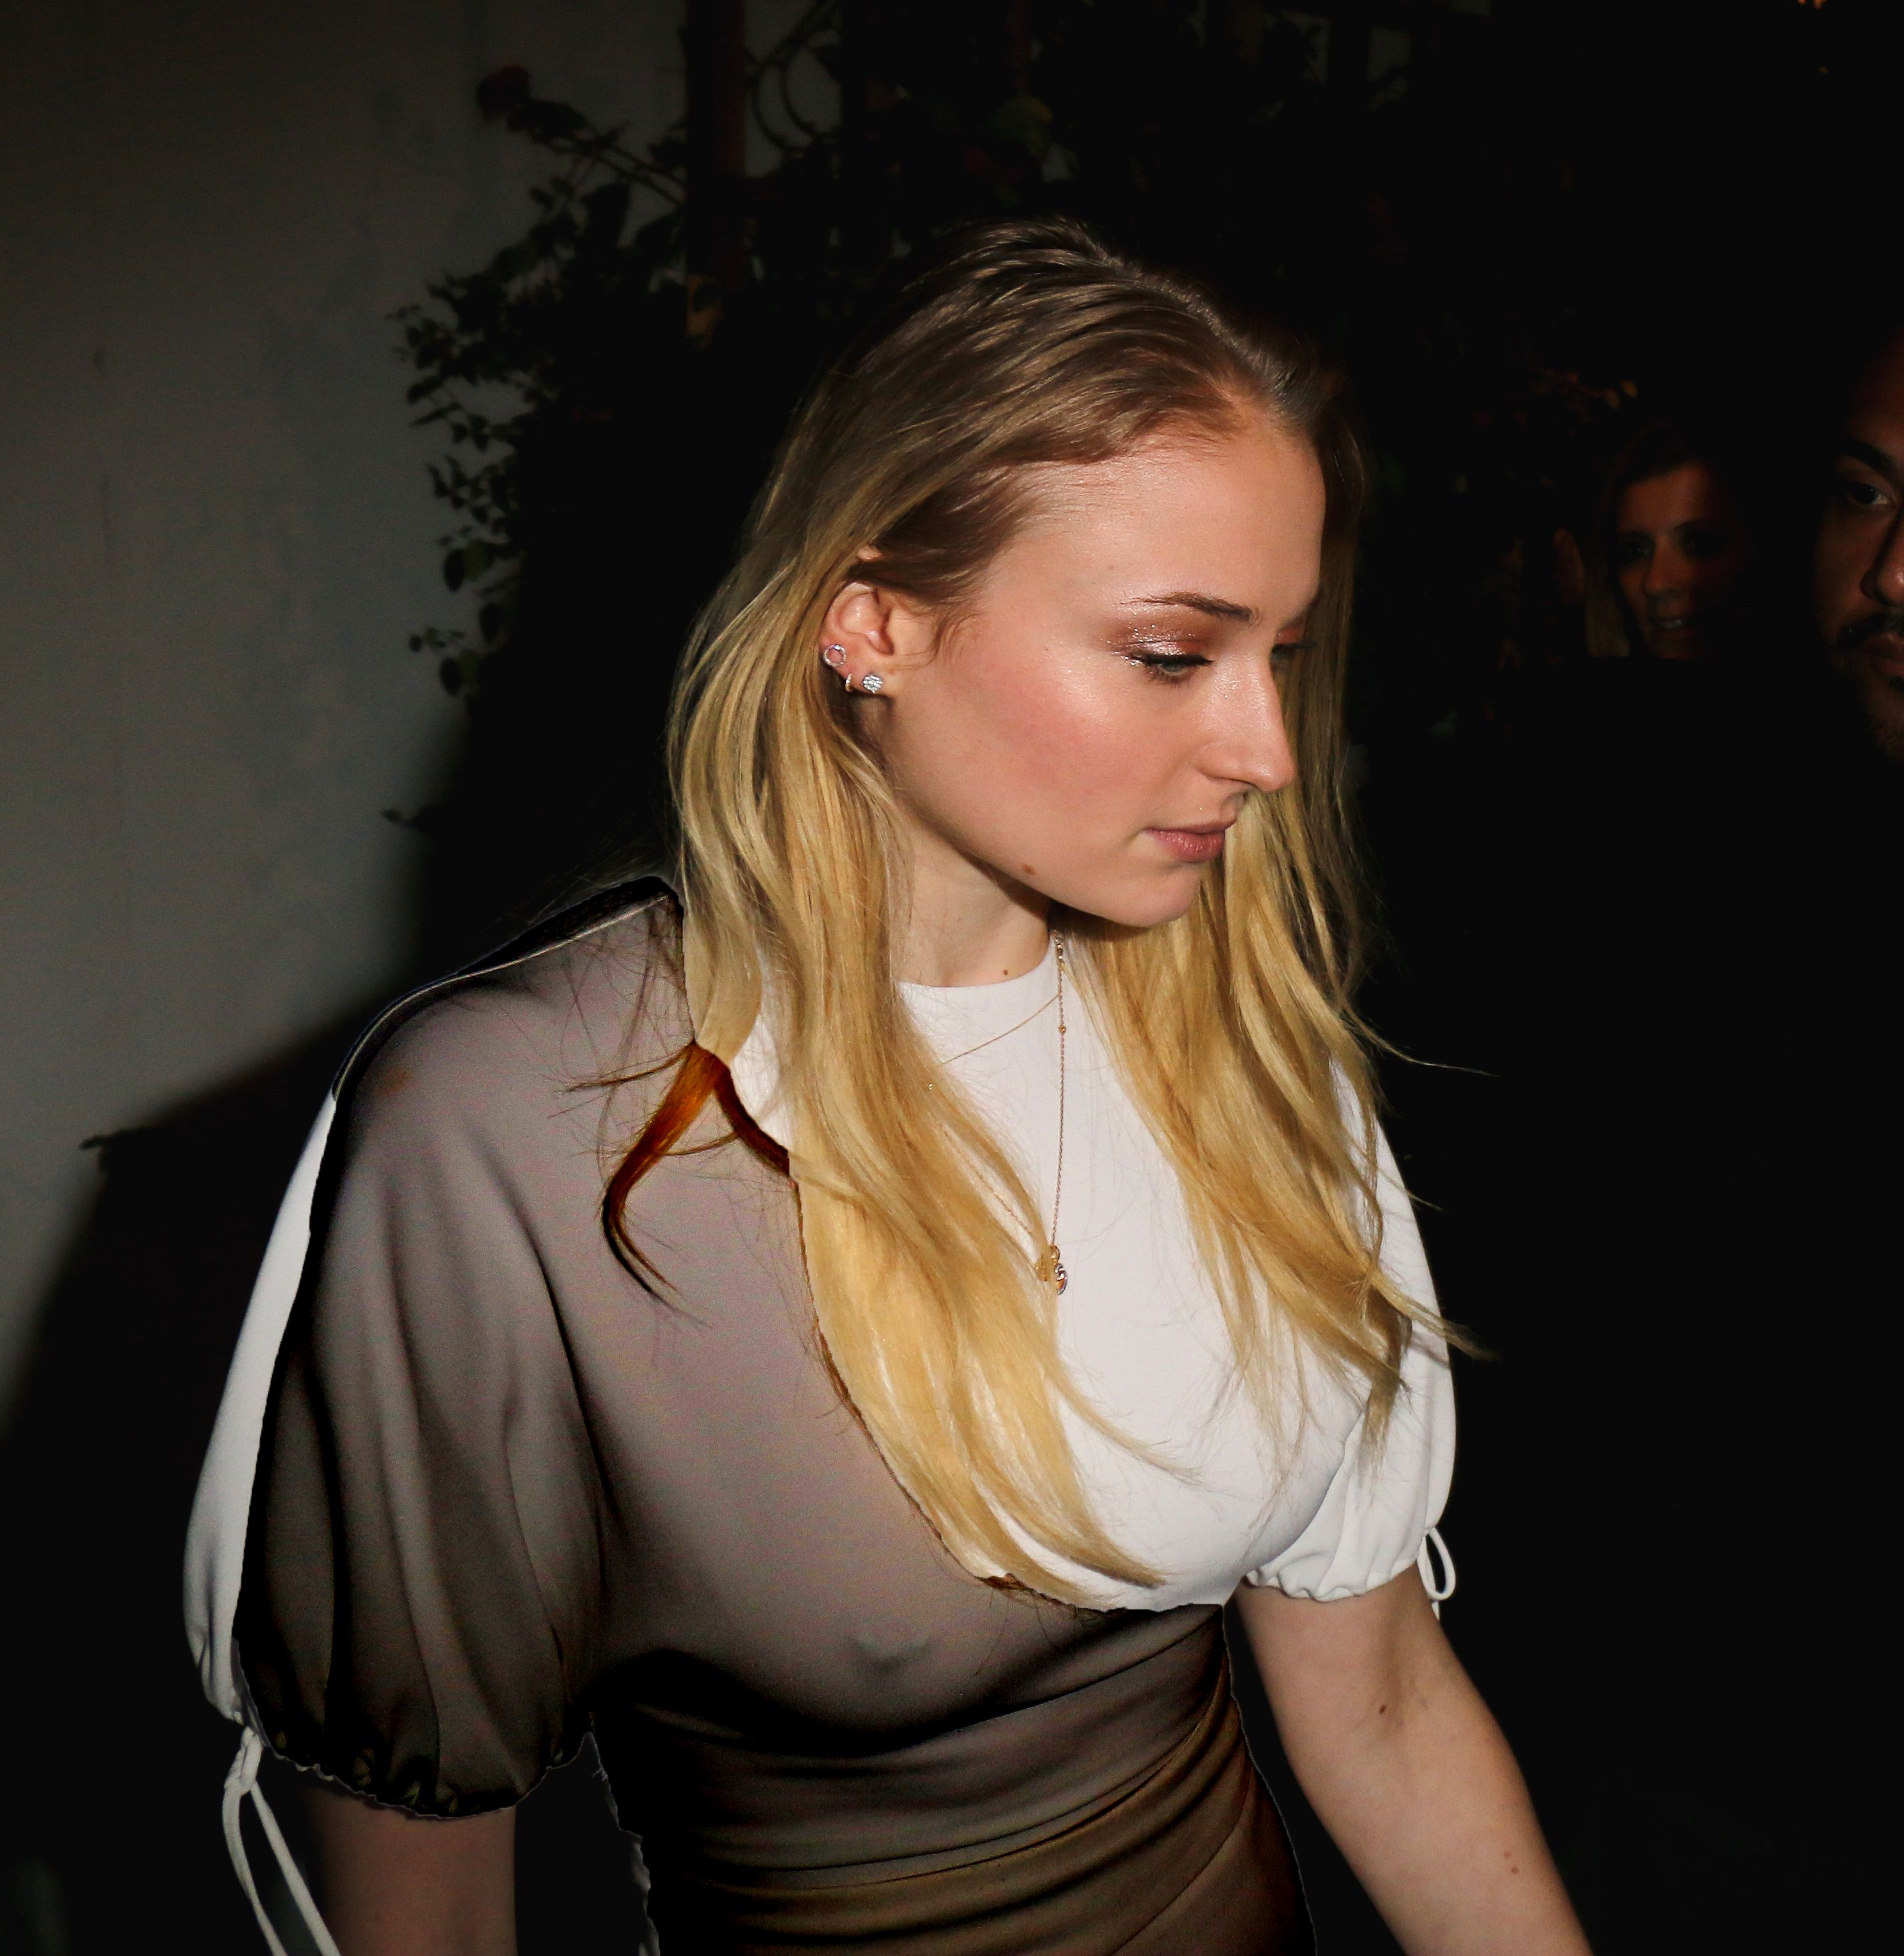 Sophie Turner boobs showing